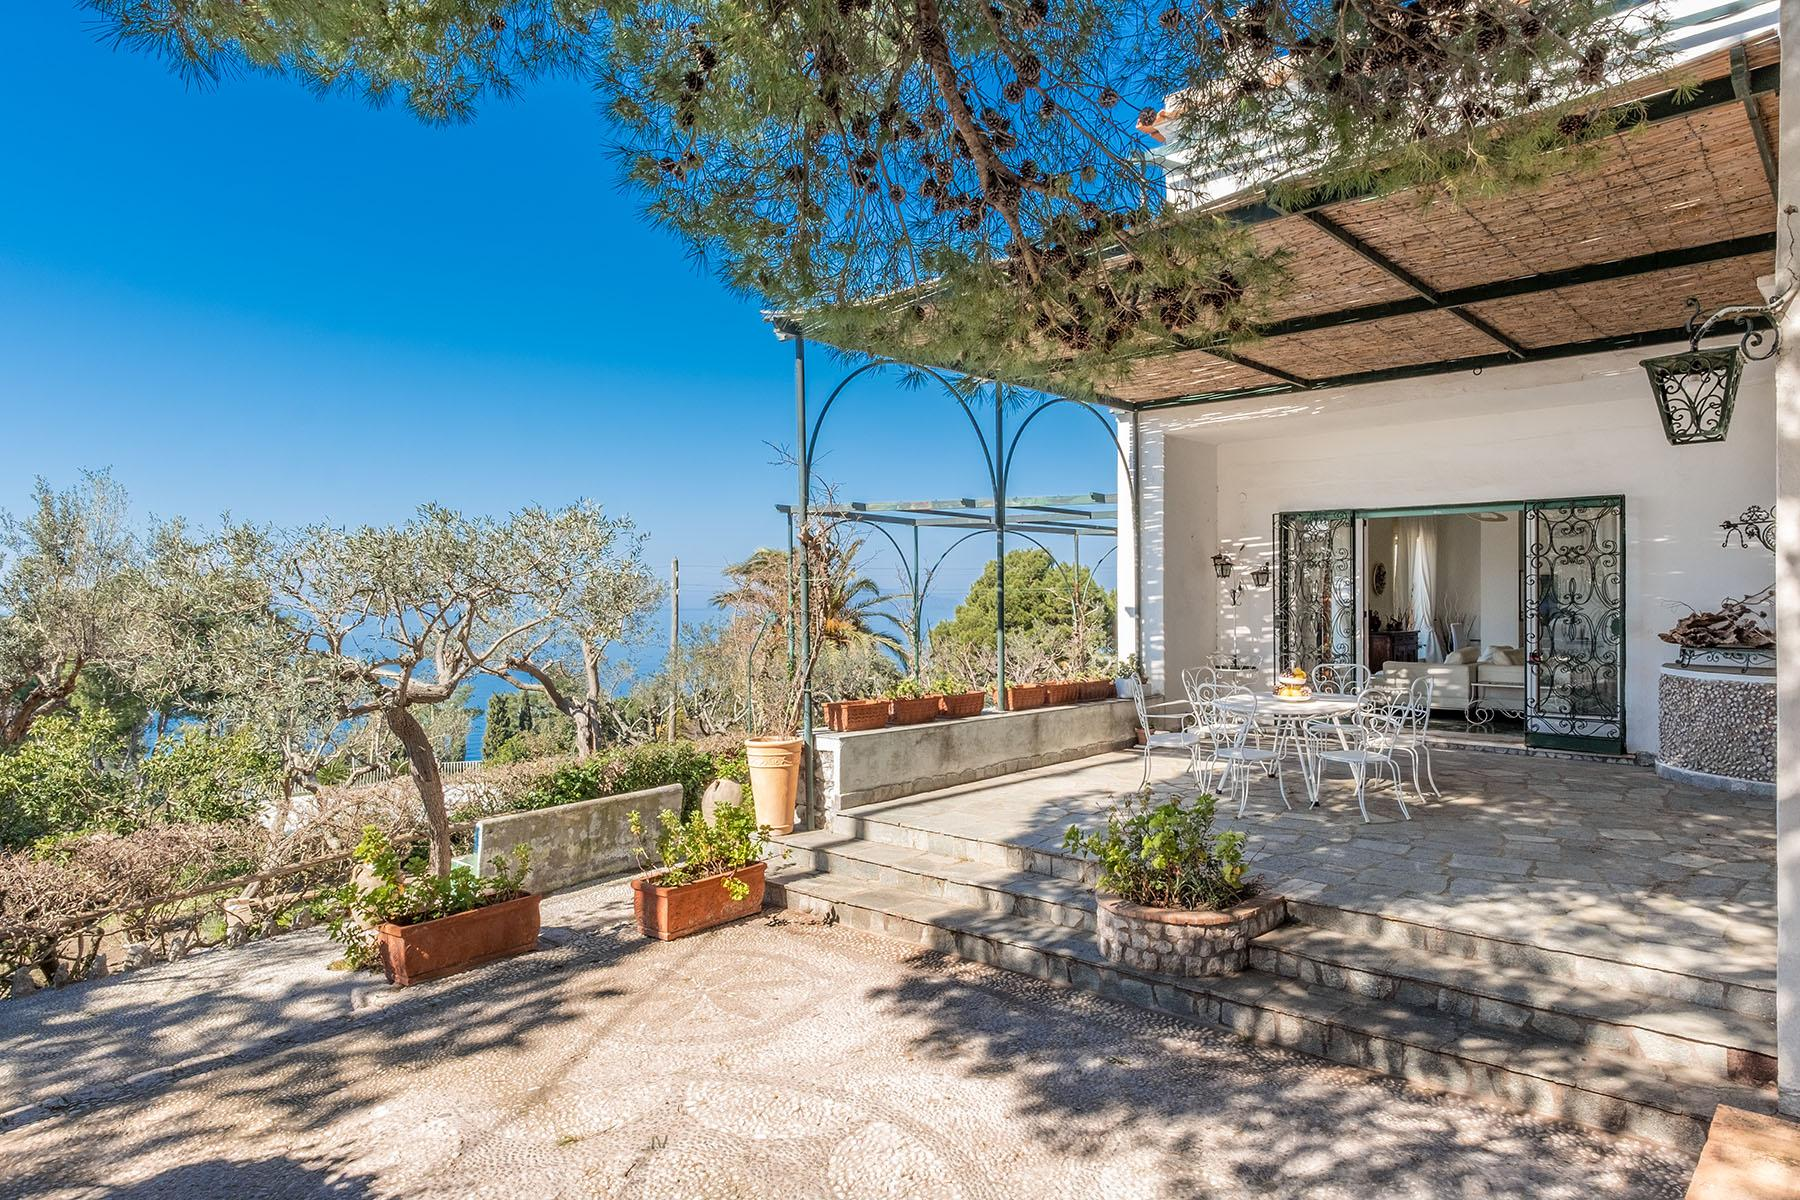 Wonderful villa with garden and seaview in Anacapri - 1